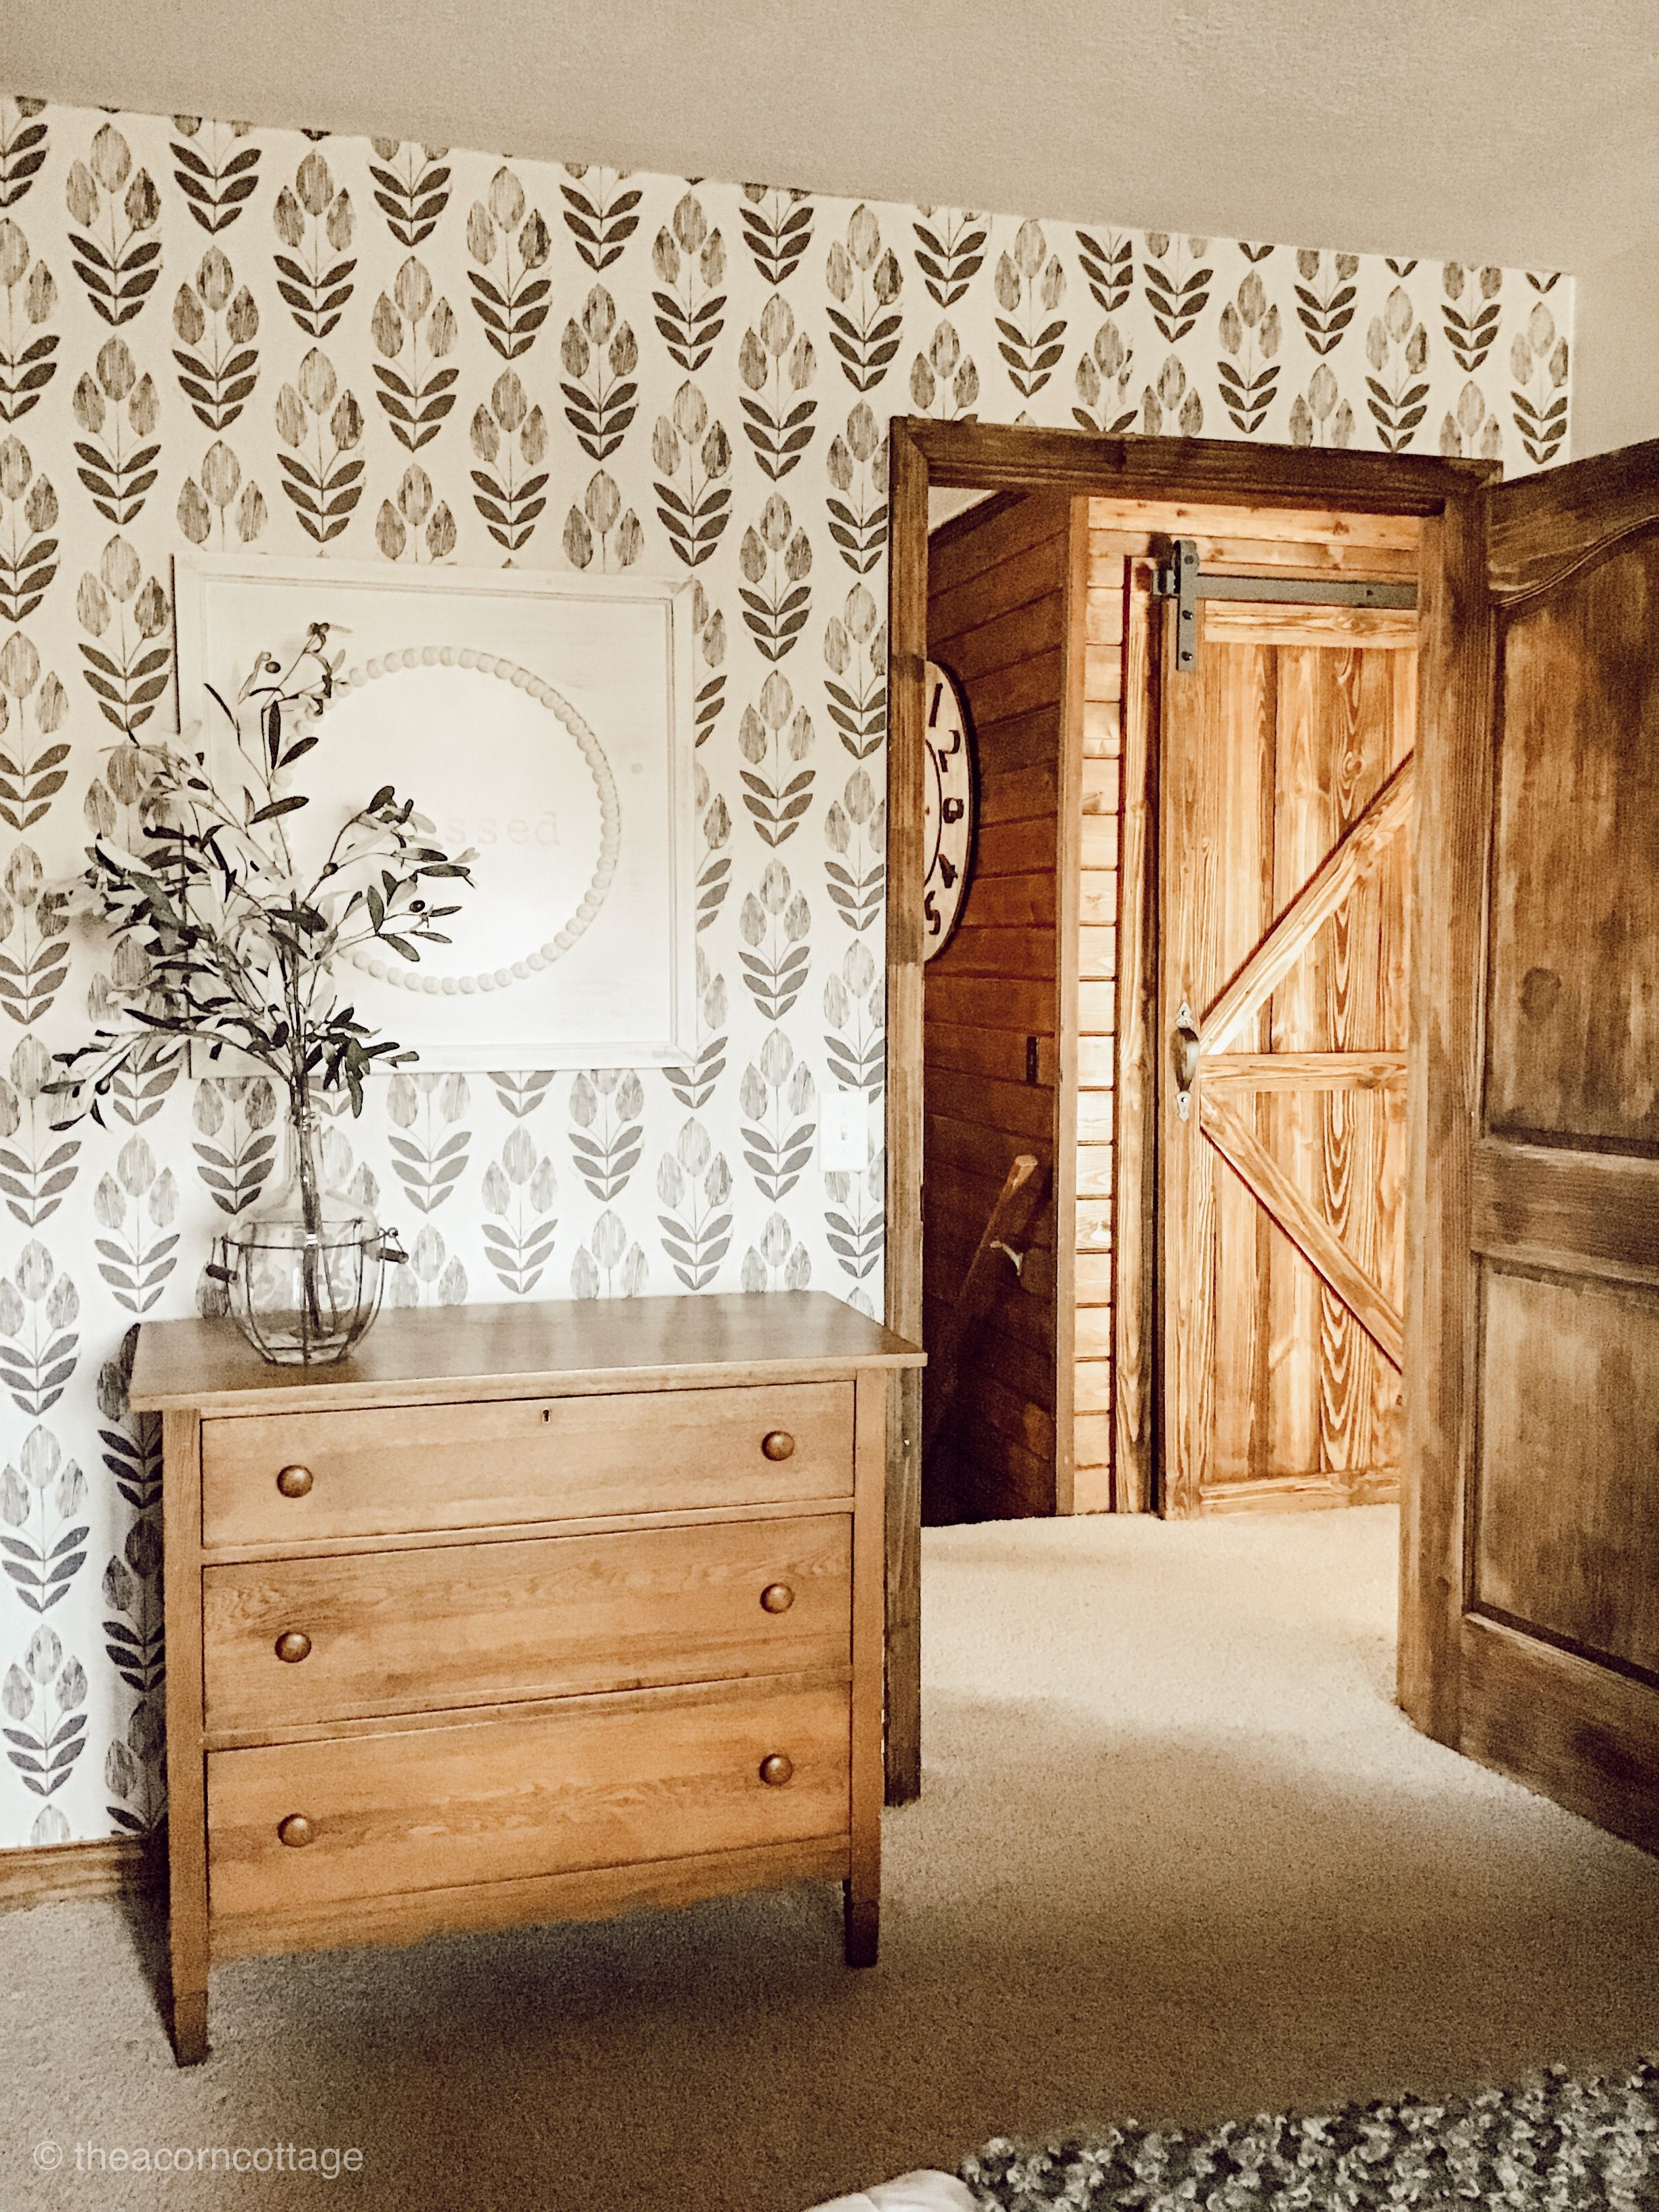 Fabulous peel and stick wallpaper! Farmhouse style at its